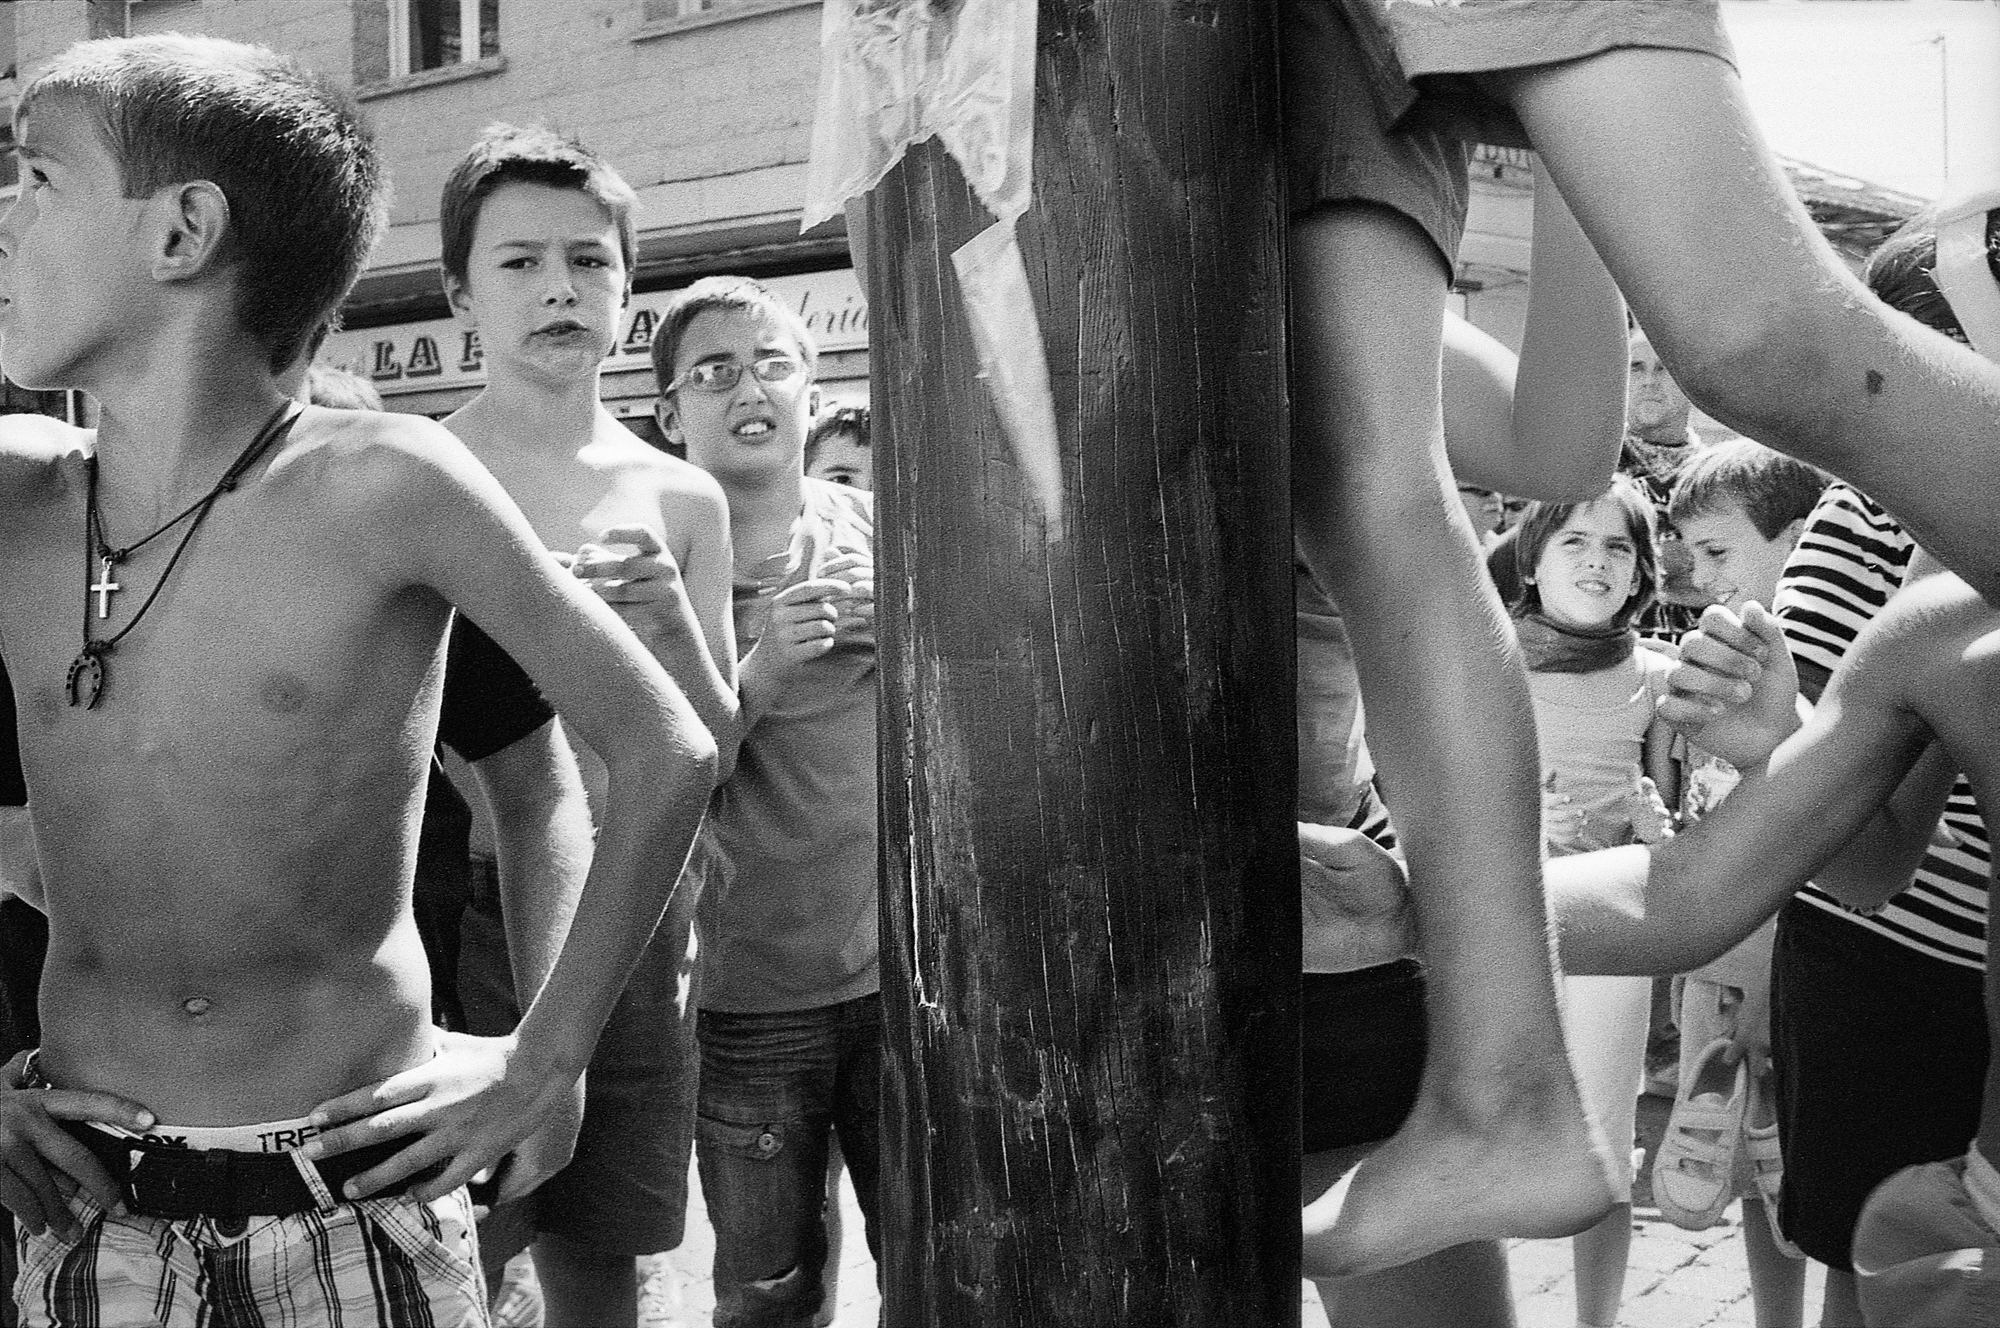 """Cucaña"" competitors awaiting their turn. Summer, 2011."